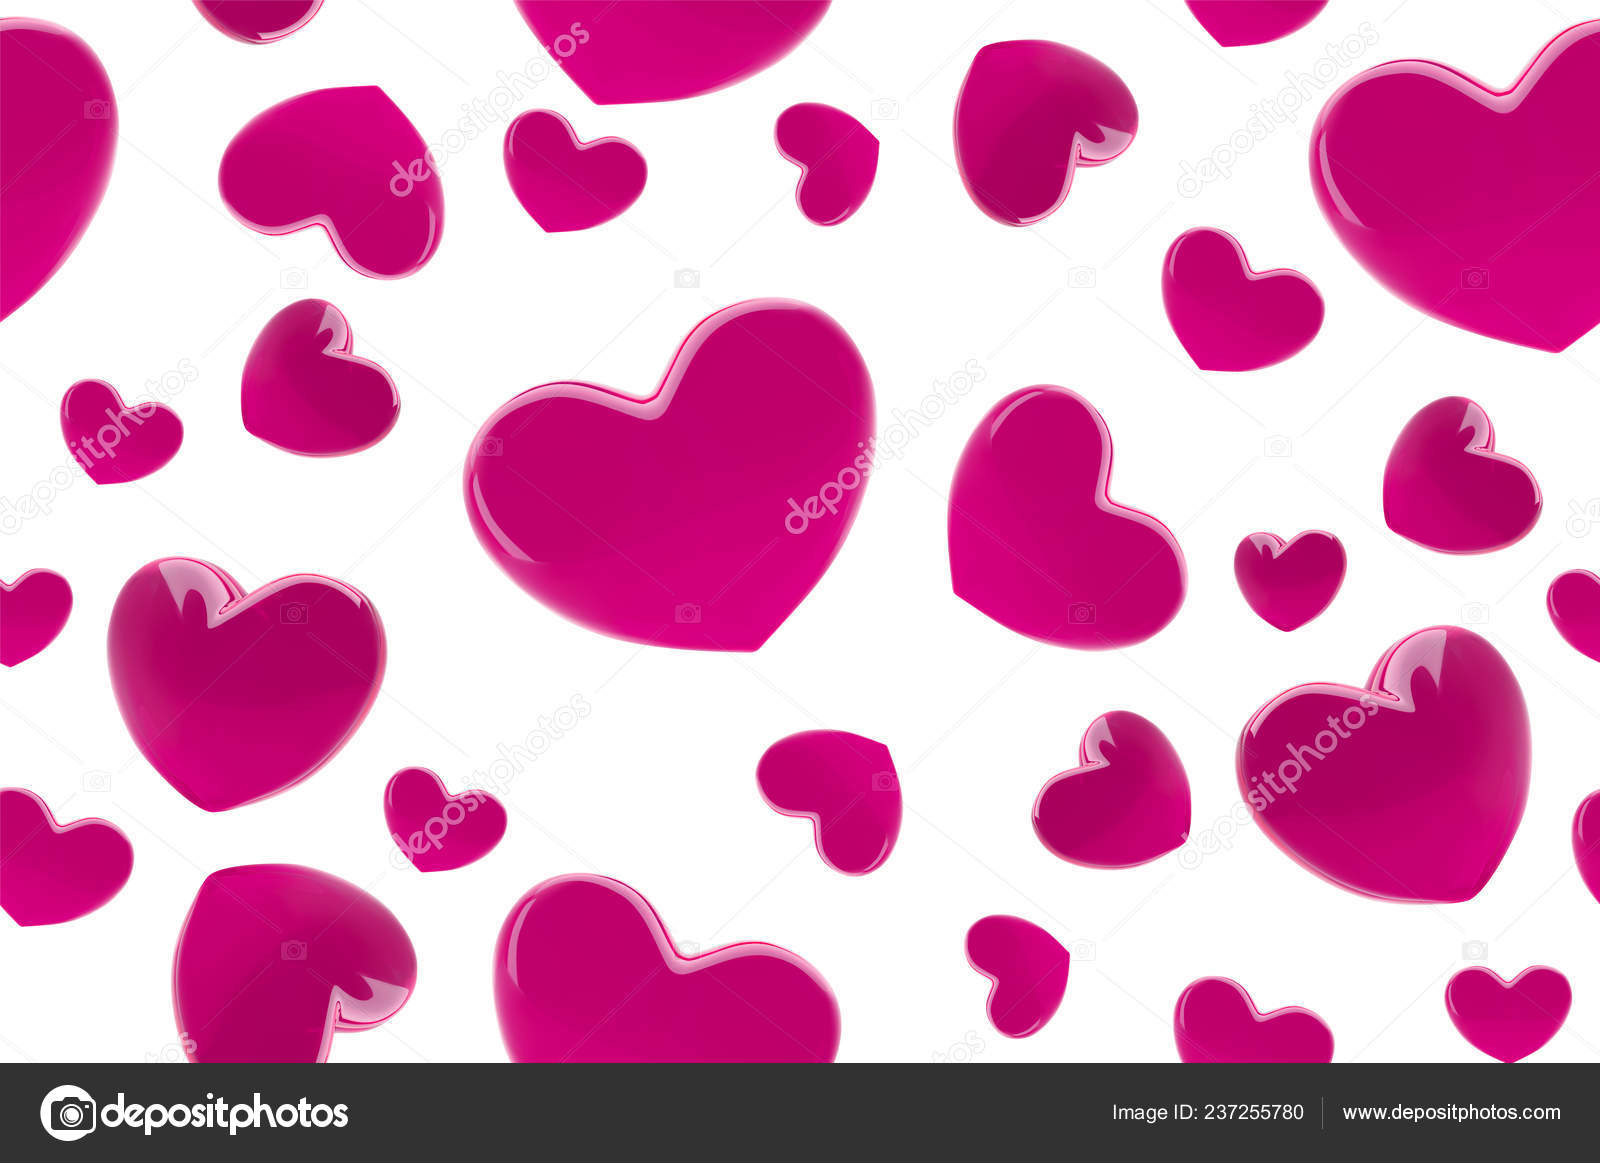 Valentines Day Hearts Seamless Pattern Background With Pink 3d